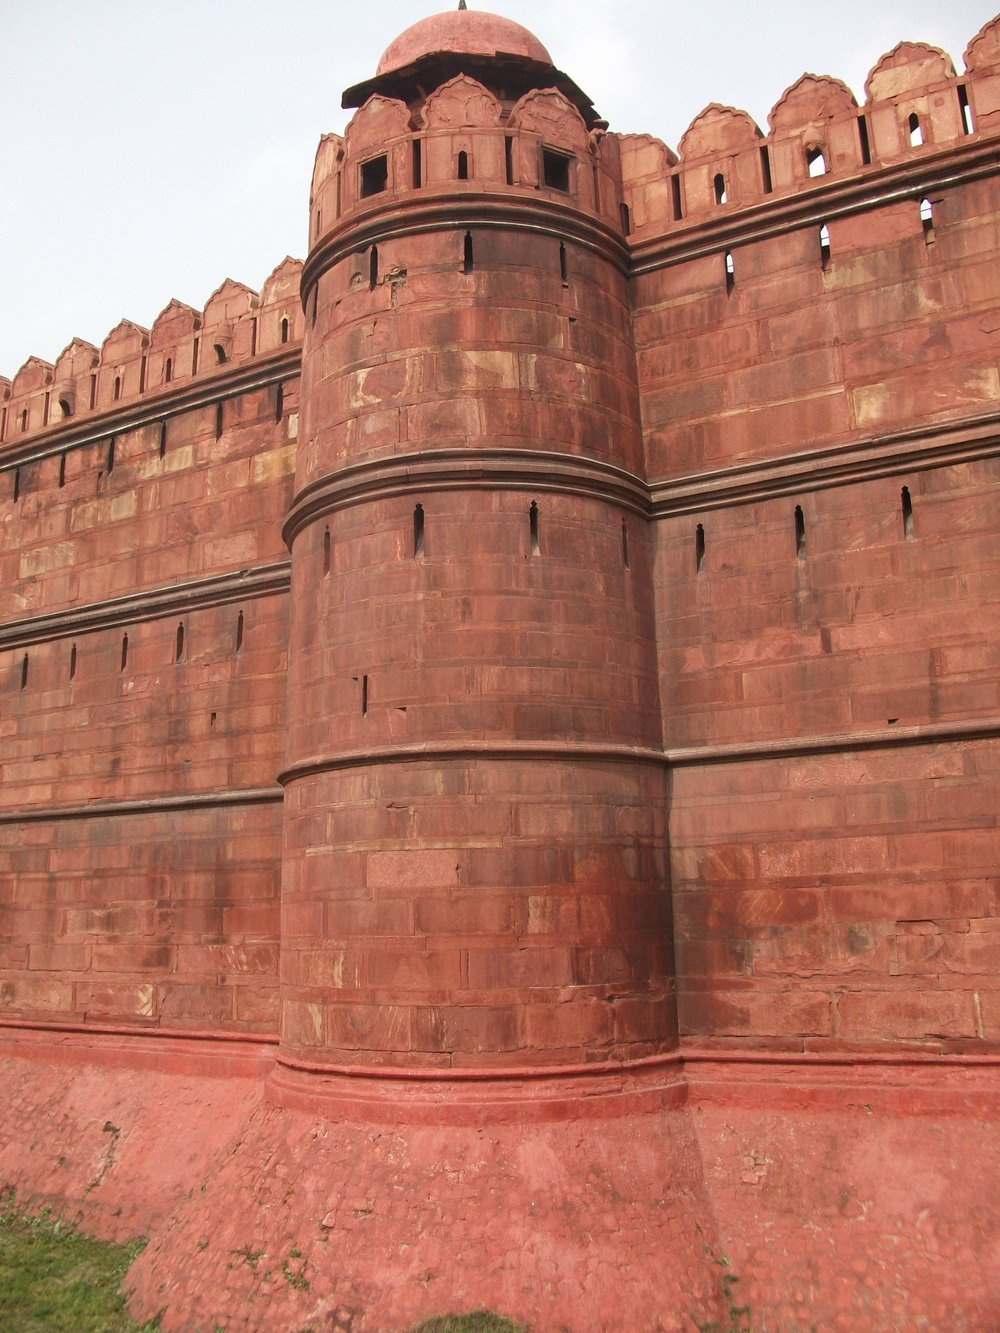 Walls of the Red Fort